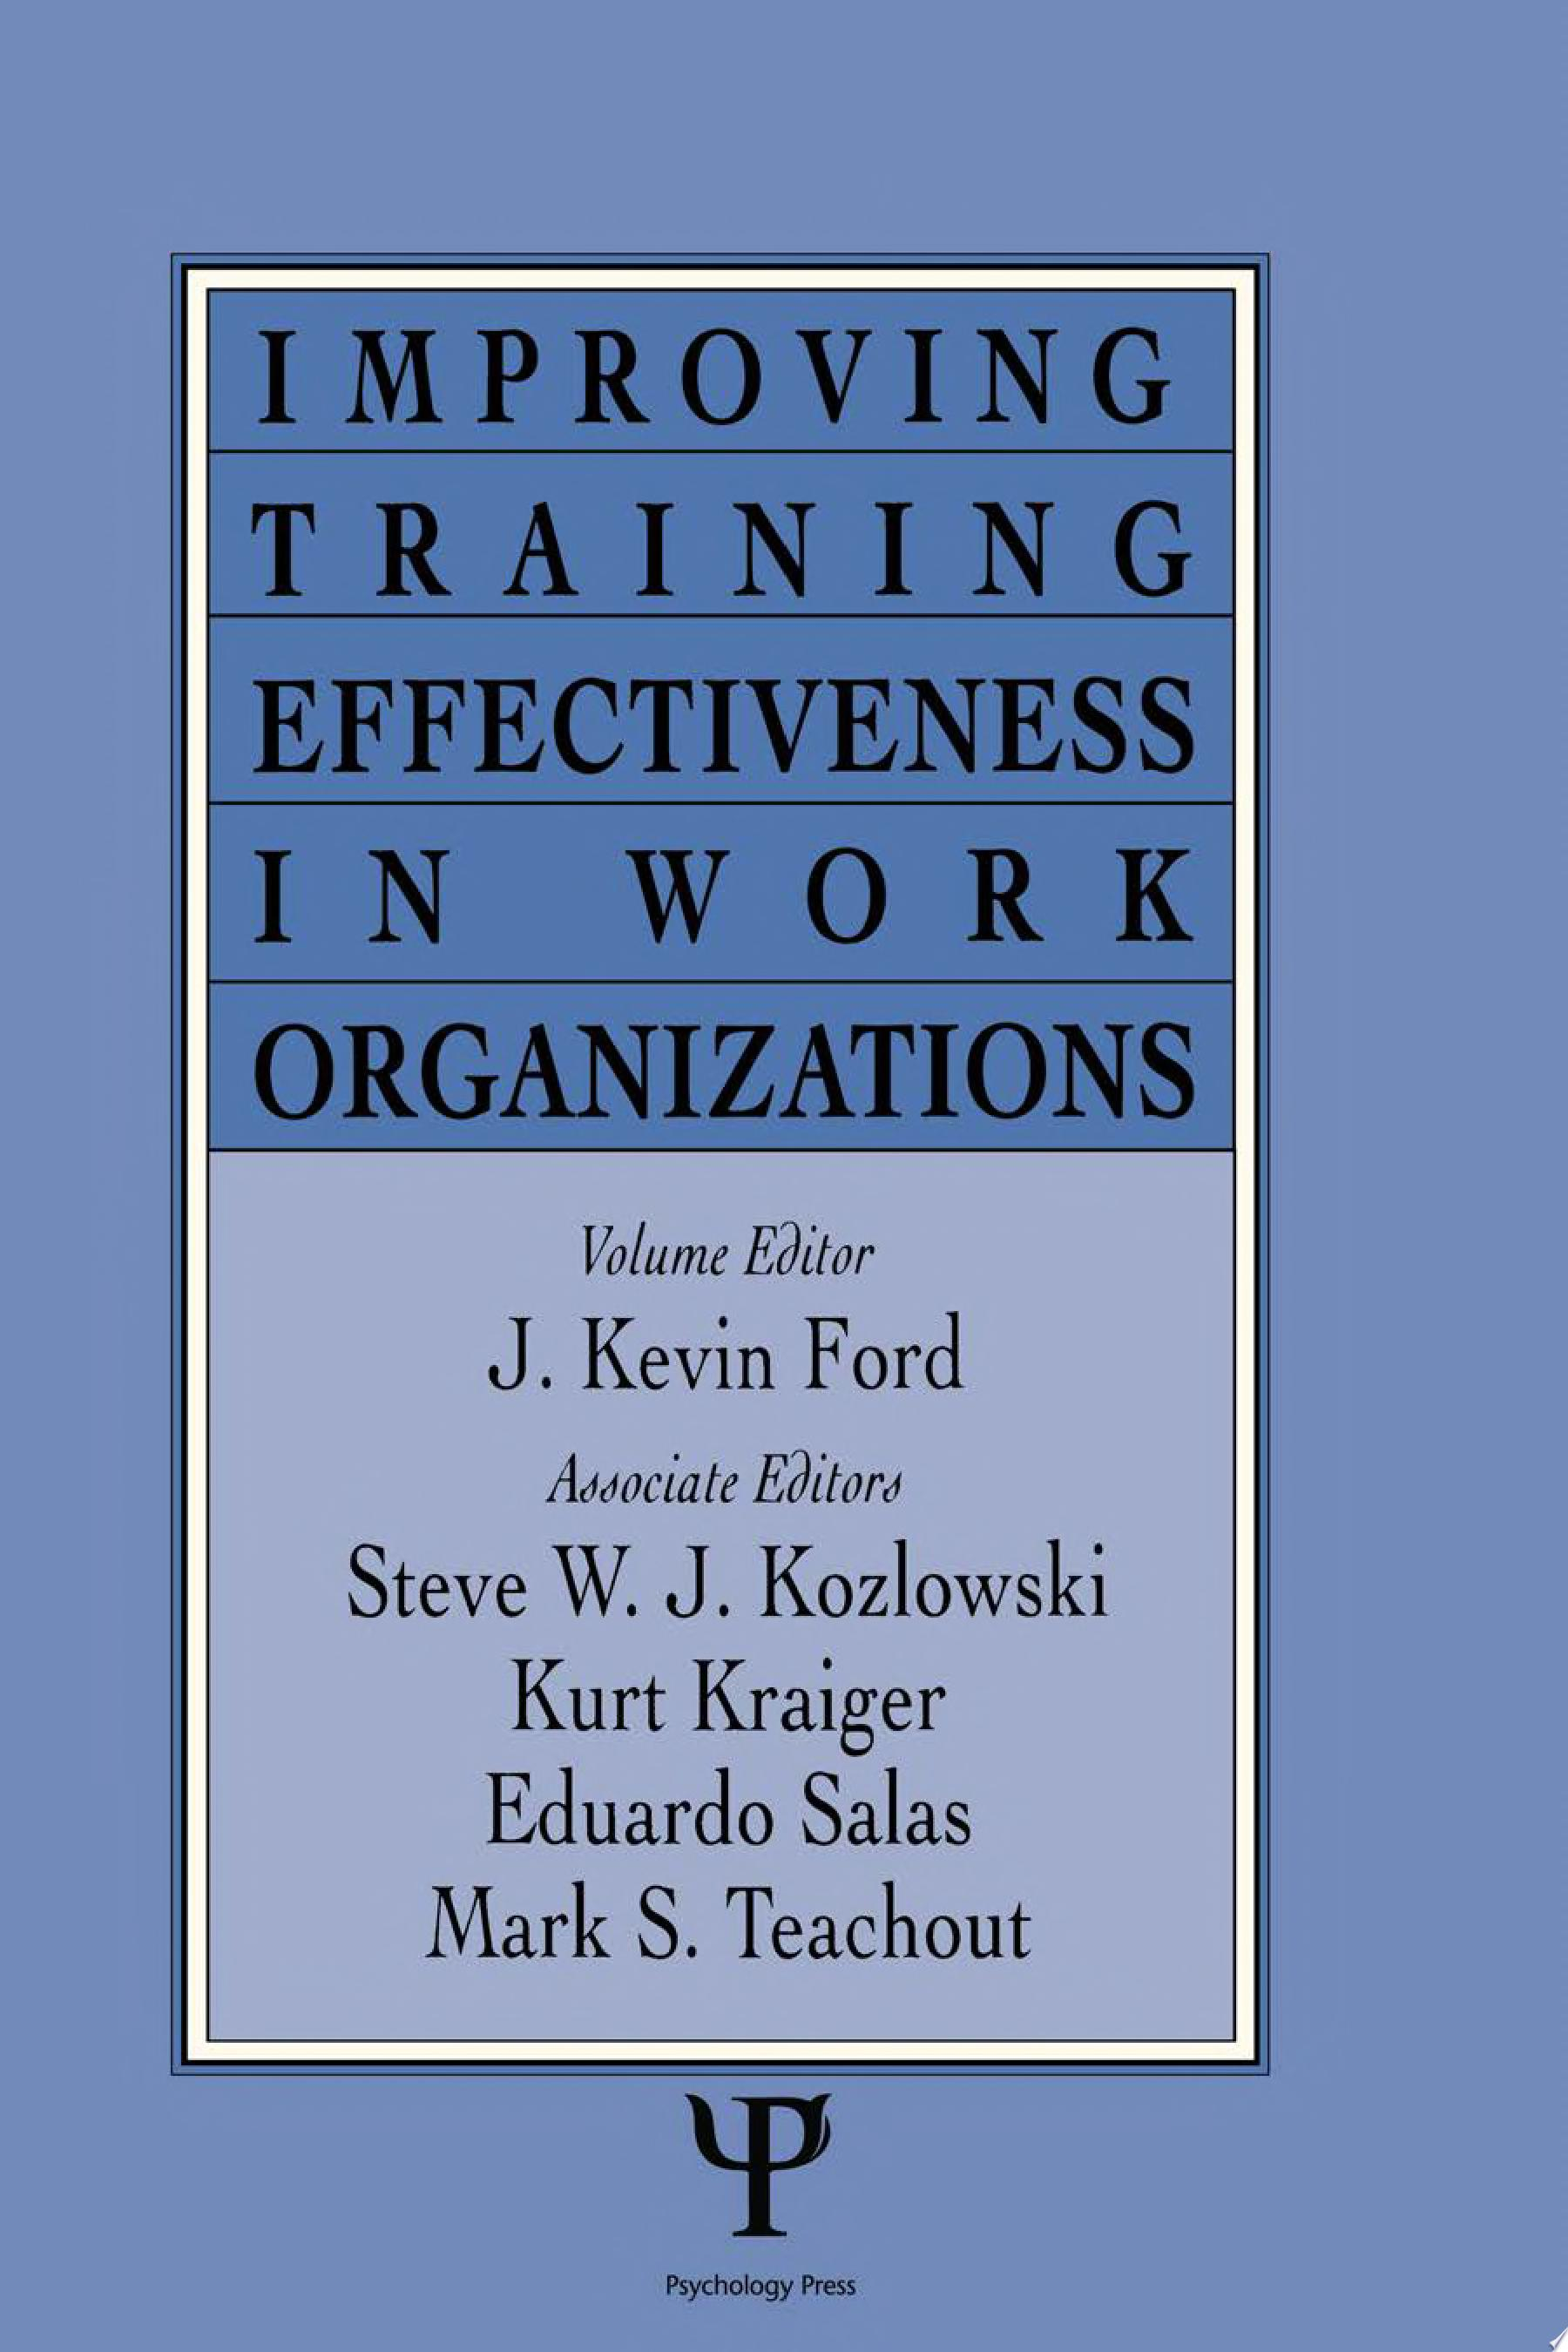 Improving Training Effectiveness in Work Organizations